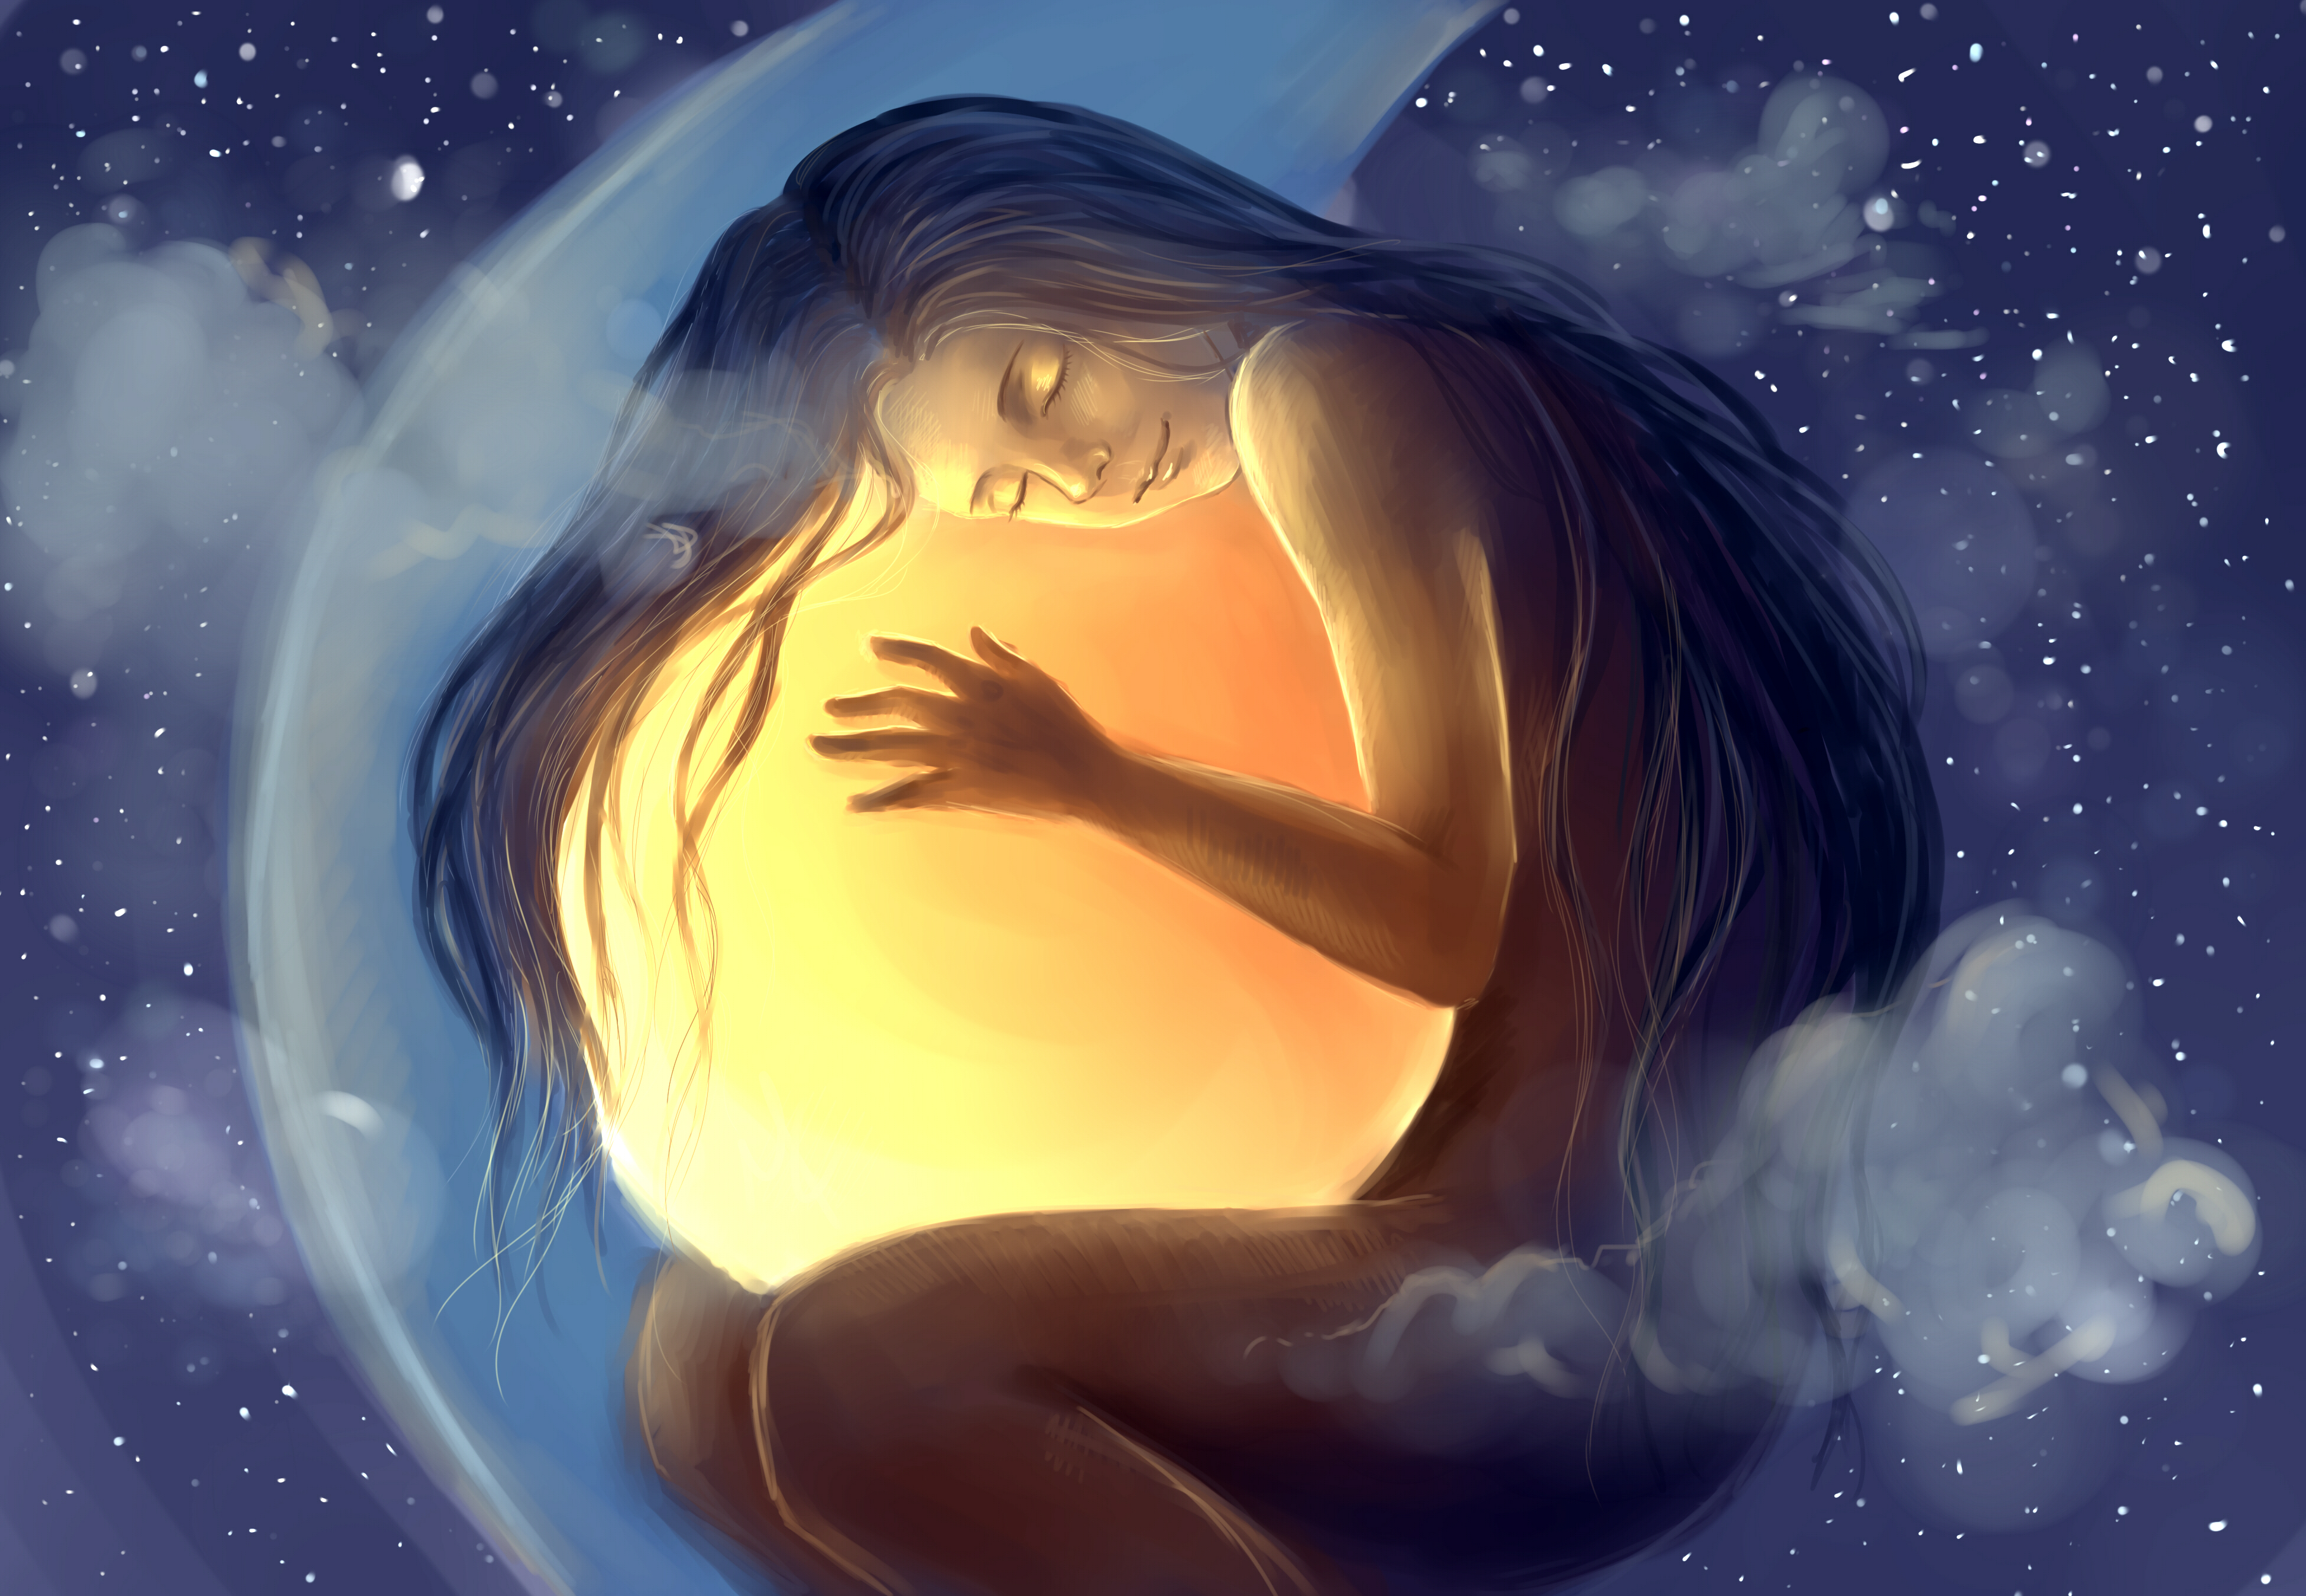 painting-dreaming-crystal-ball-moon-star-sleeping-happy-smile